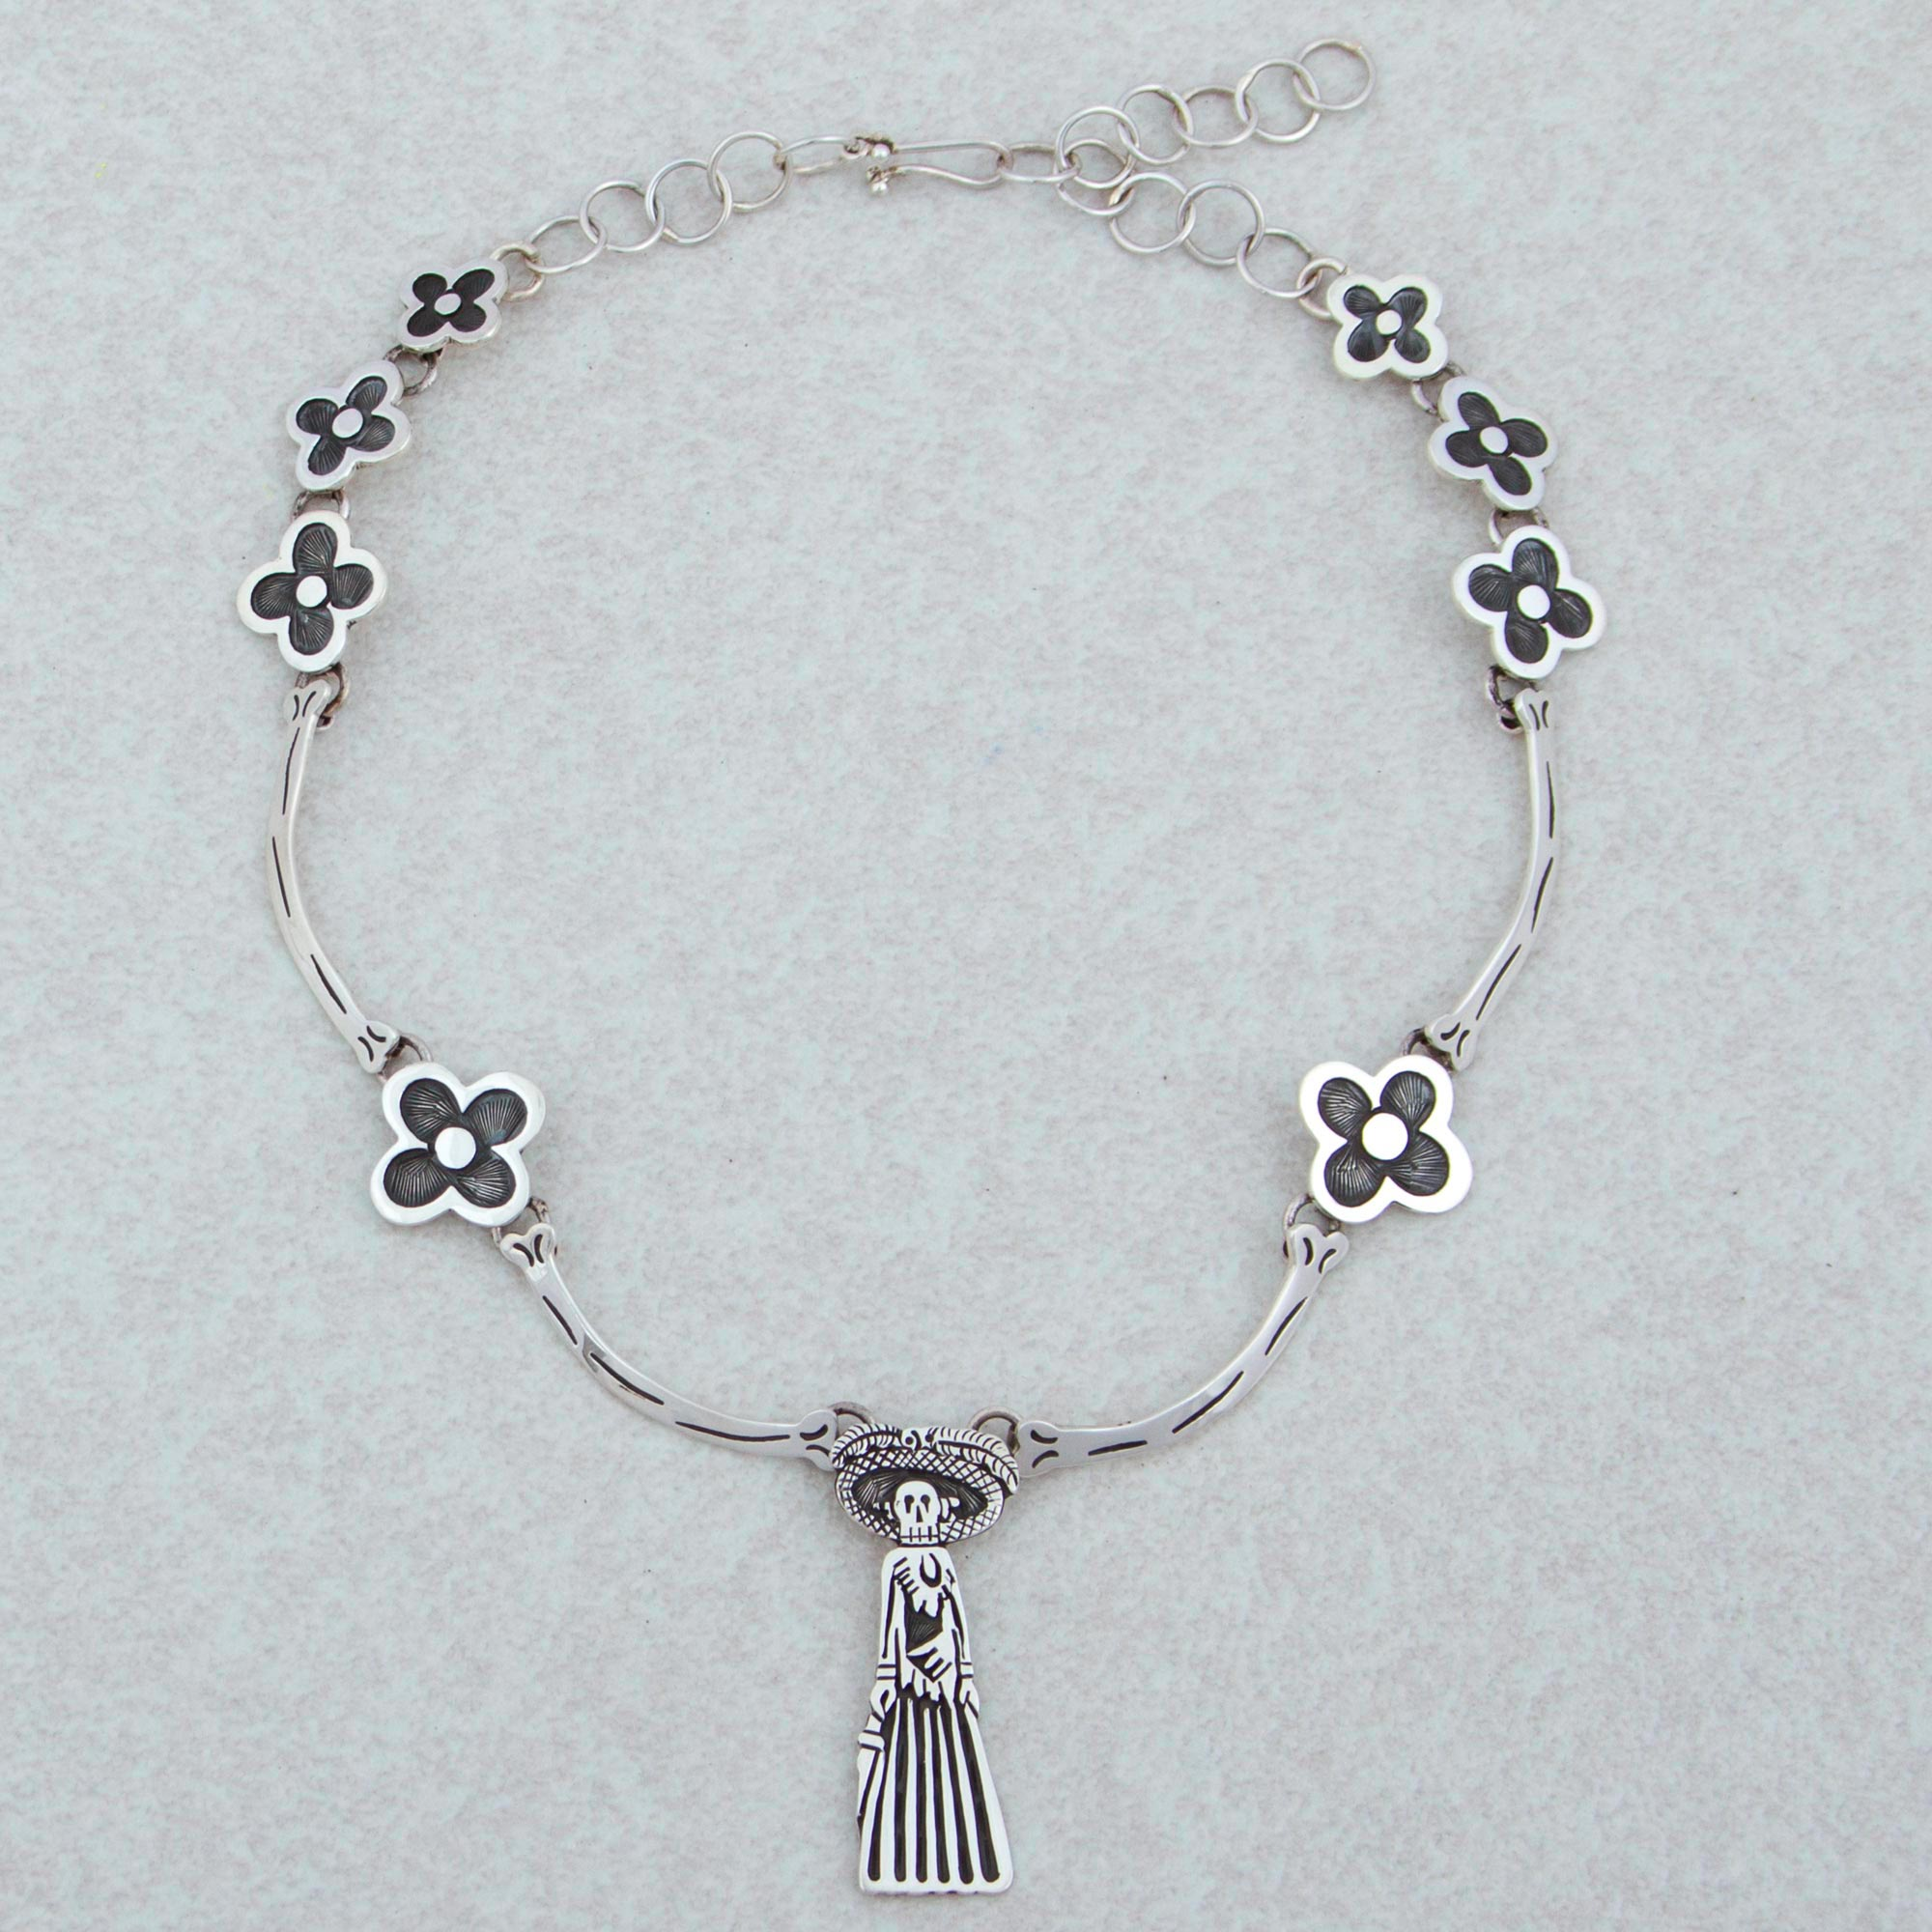 Catrina Silver Choker Day of the Dead Jewelry Collection, 'Catrina and the Flowers'